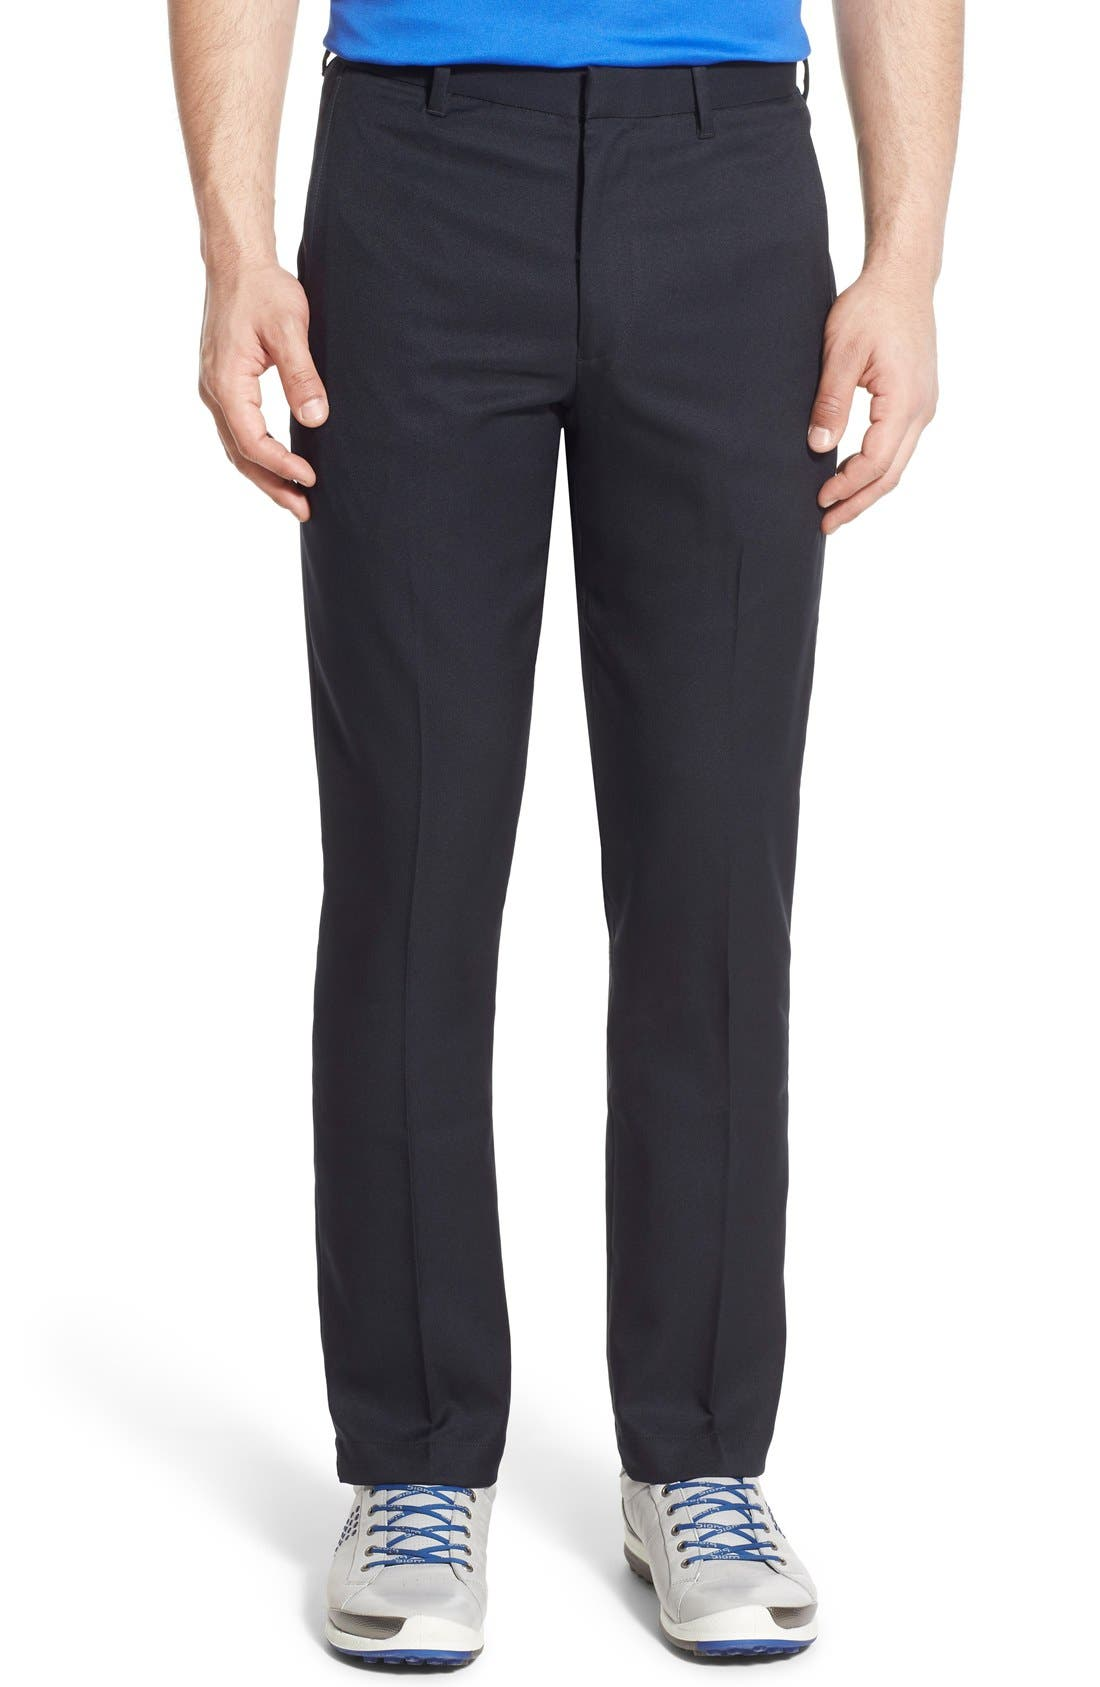 'TECH' FLAT FRONT WRINKLE FREE GOLF PANTS